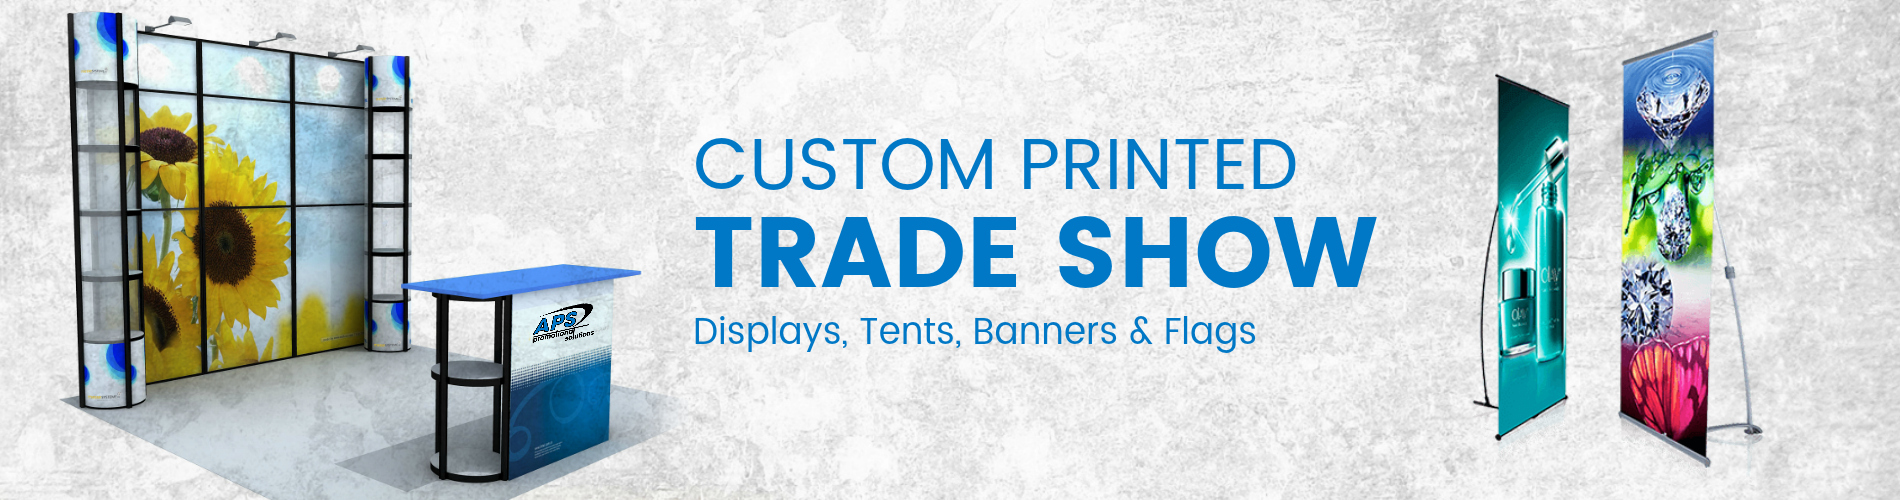 Trade Show Booth Jacksonville | APS Trade Show HQ